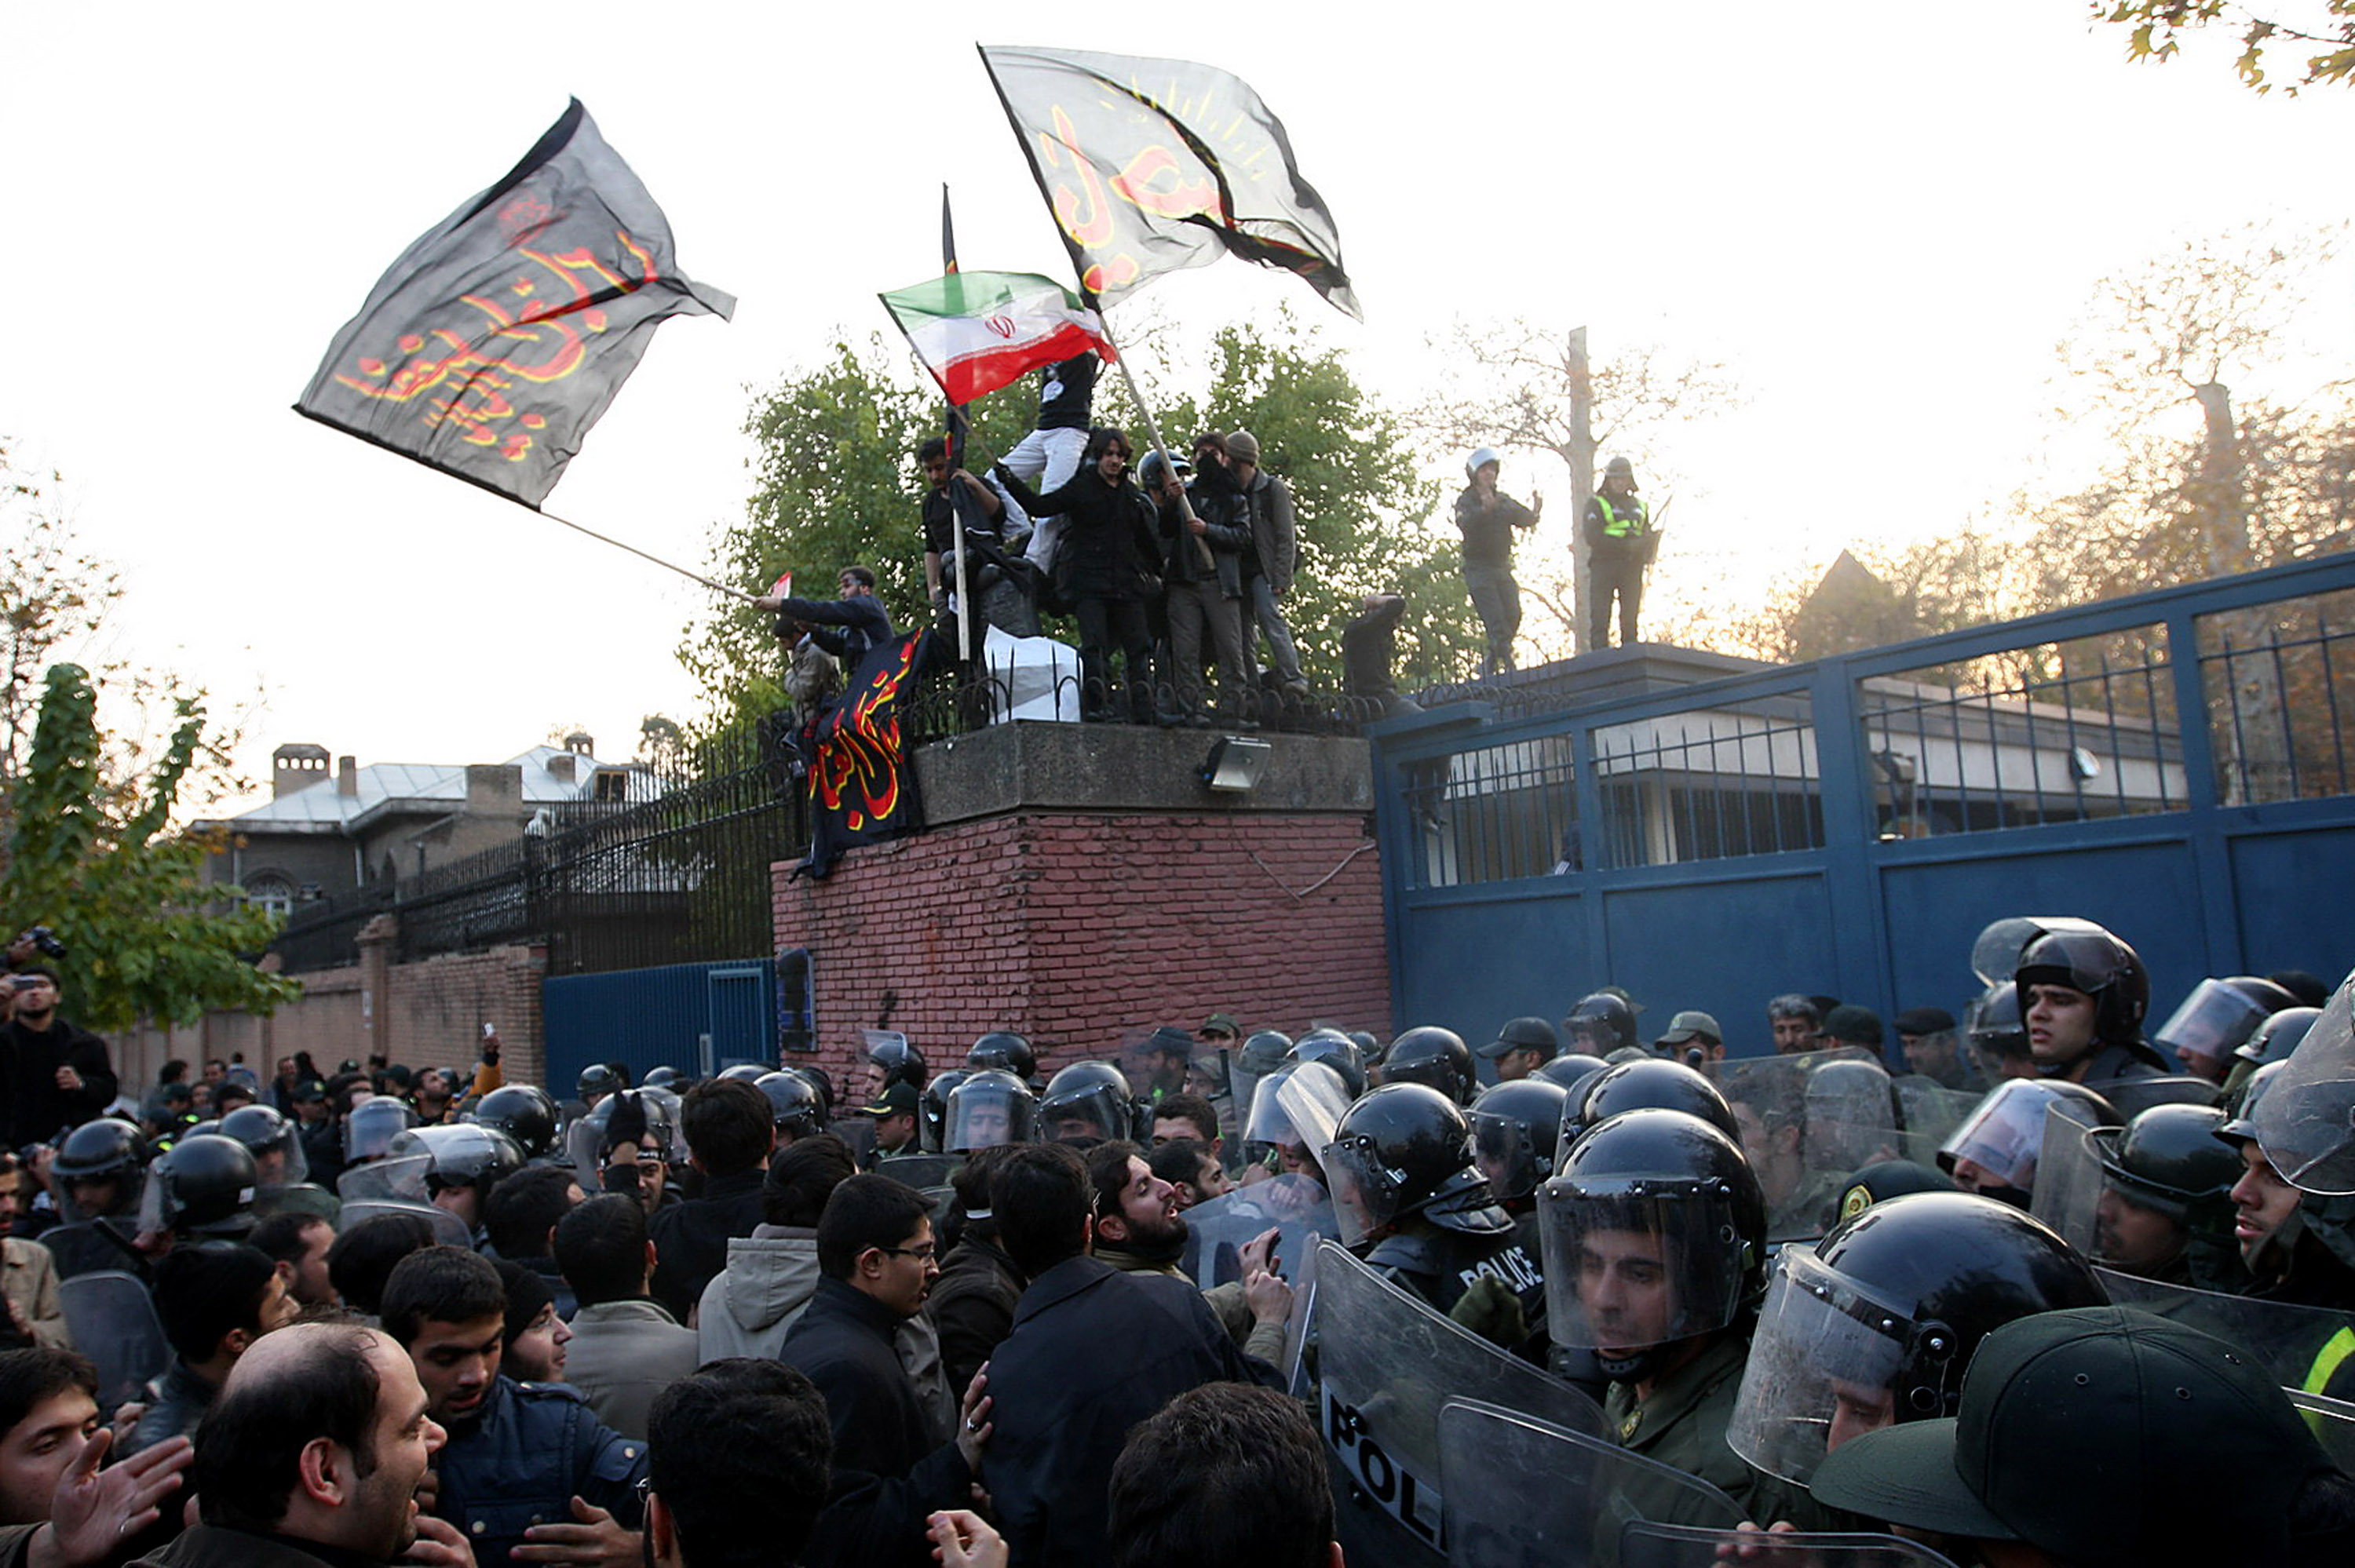 A large number of protesters prepare to break in to the British Embassy during an anti-British demonstration on November 29, 2011 in Tehran, Iran.